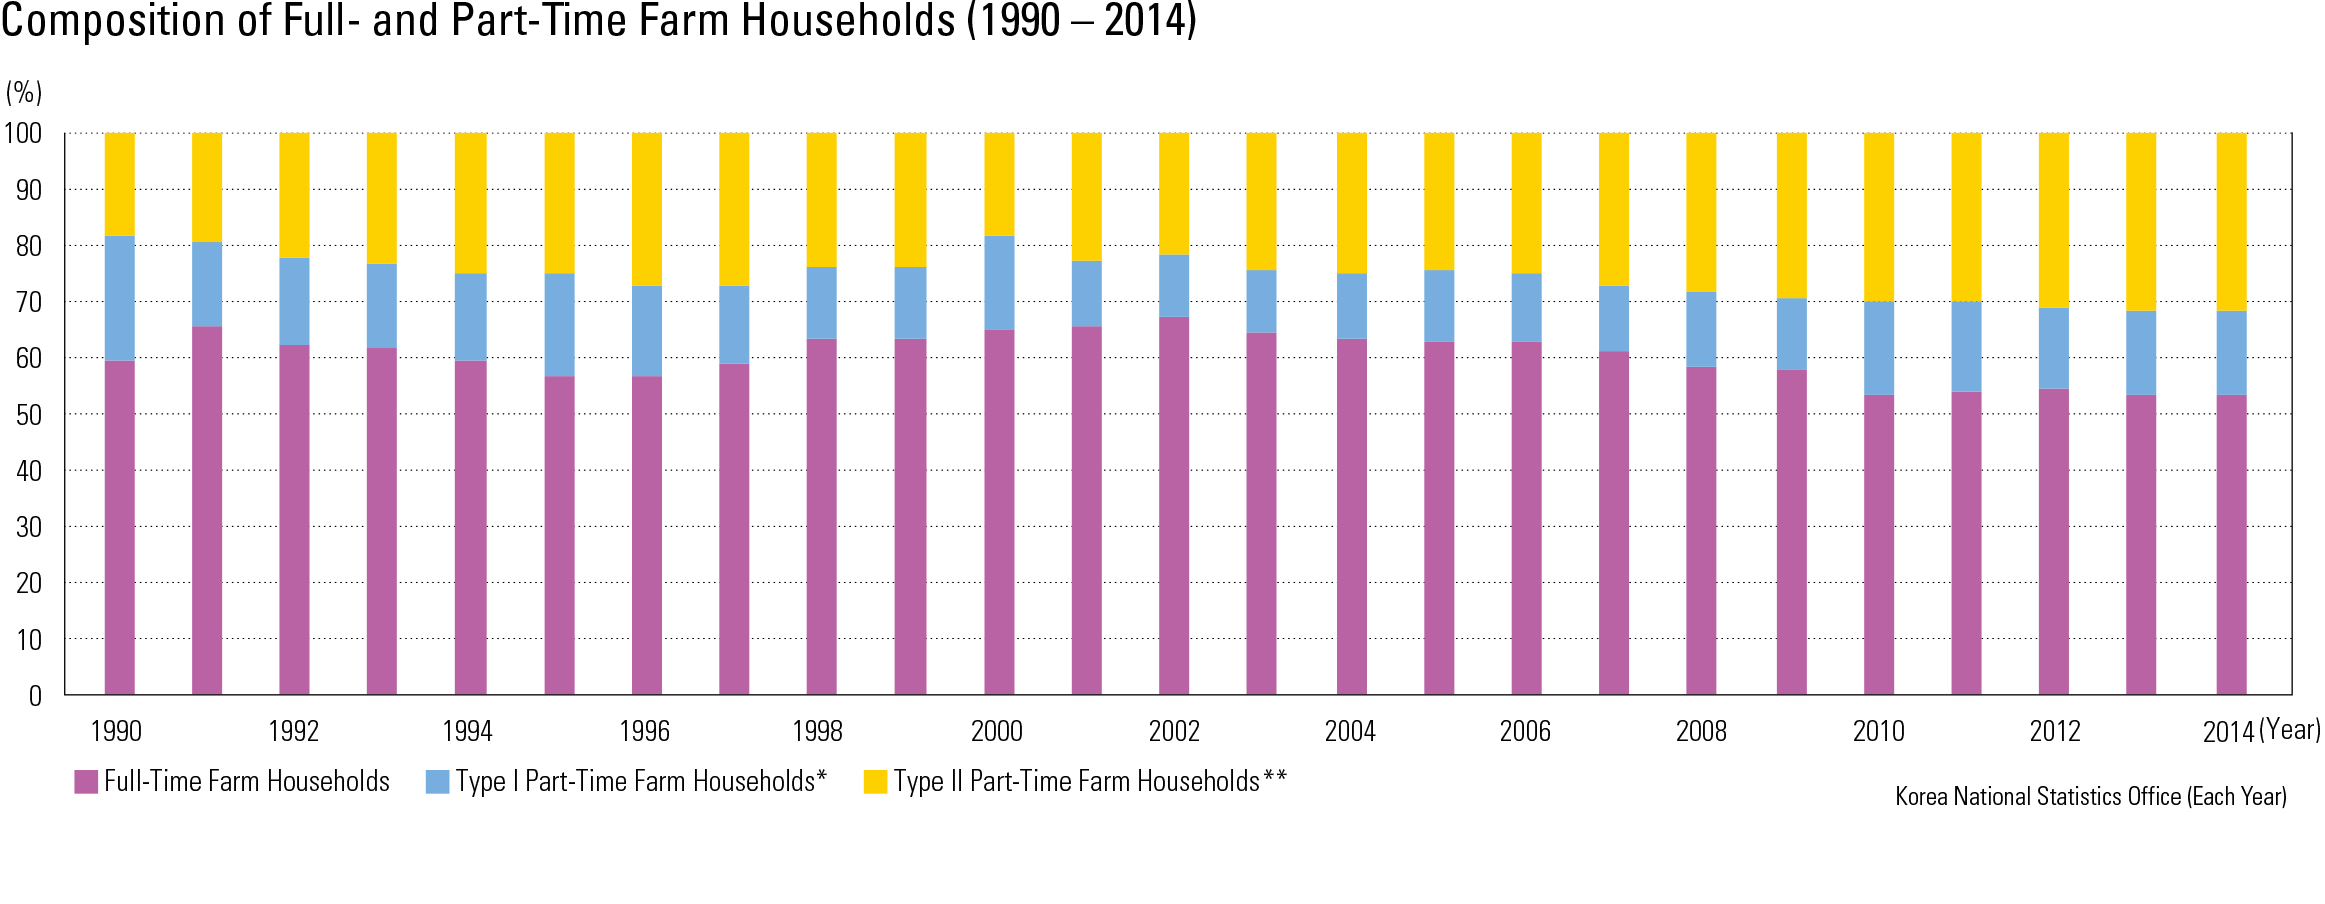 "Composition of Full- and Part-Time Farm Households (1990 – 2014)<p class=""oz_zoom"" zimg=""http://imagedata.cafe24.com/us_3/us3_159-4_2.jpg""><span style=""font-family:Nanum Myeongjo;""><span style=""font-size:18px;""><span class=""label label-danger"">UPDATE DATA</span></span></p>"